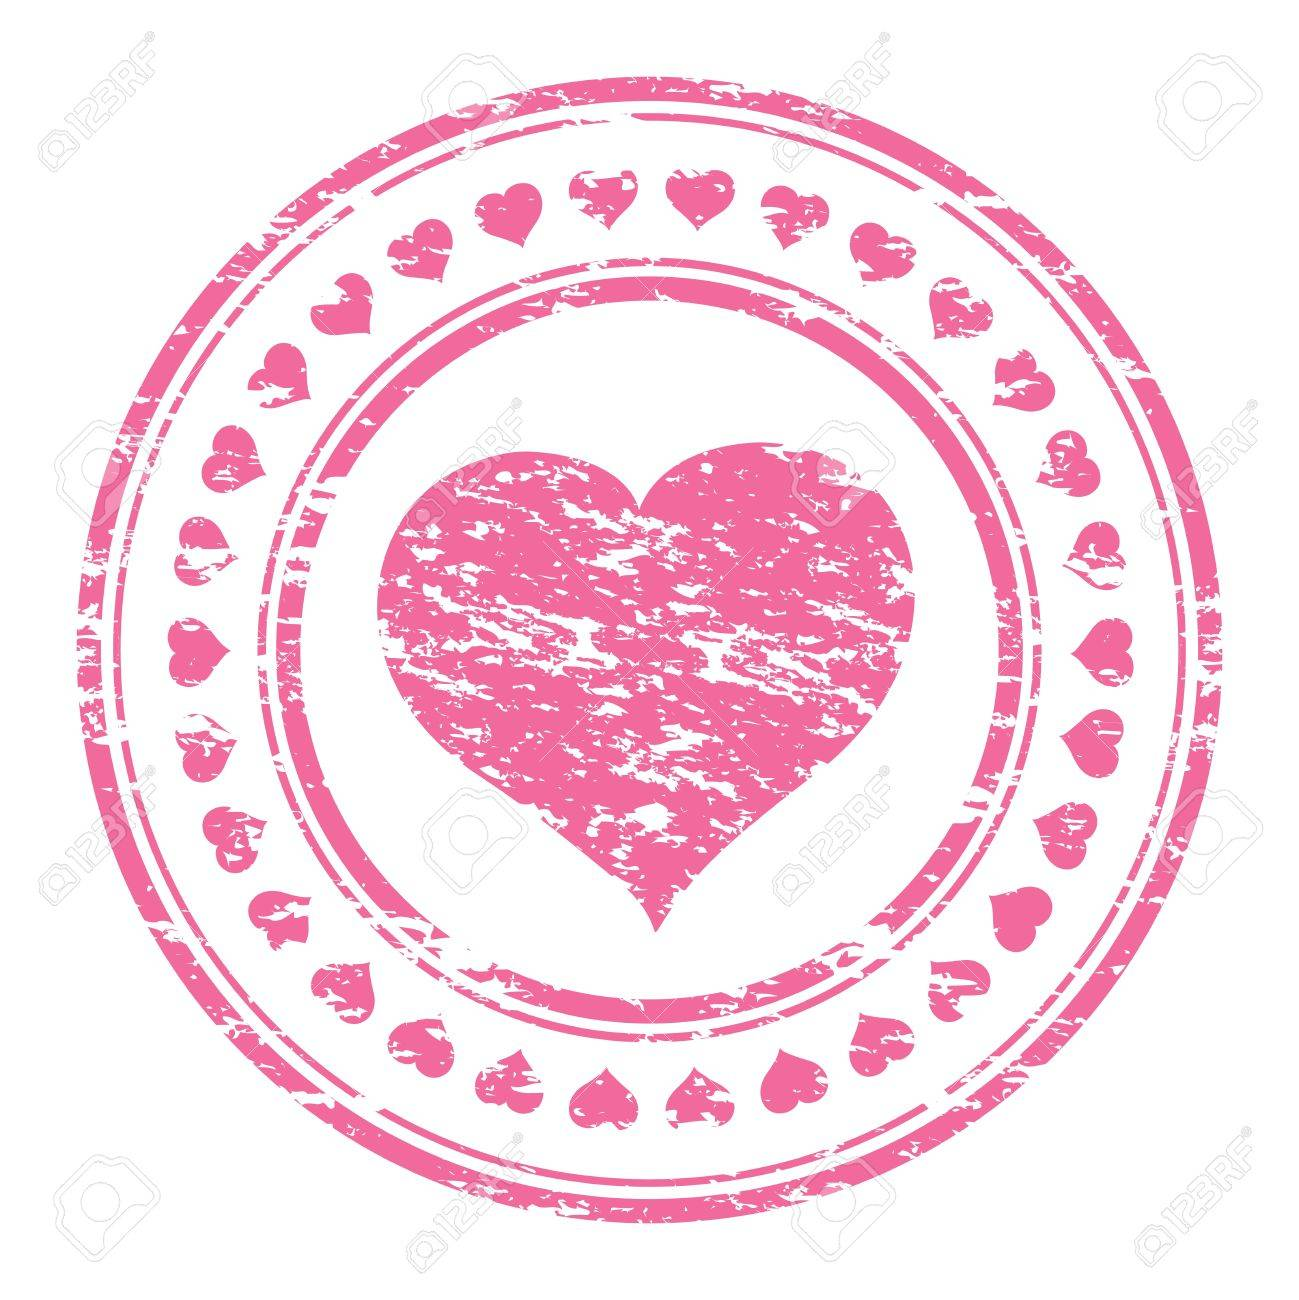 illustrator of a grunge pink rubber stamp with heart isolated